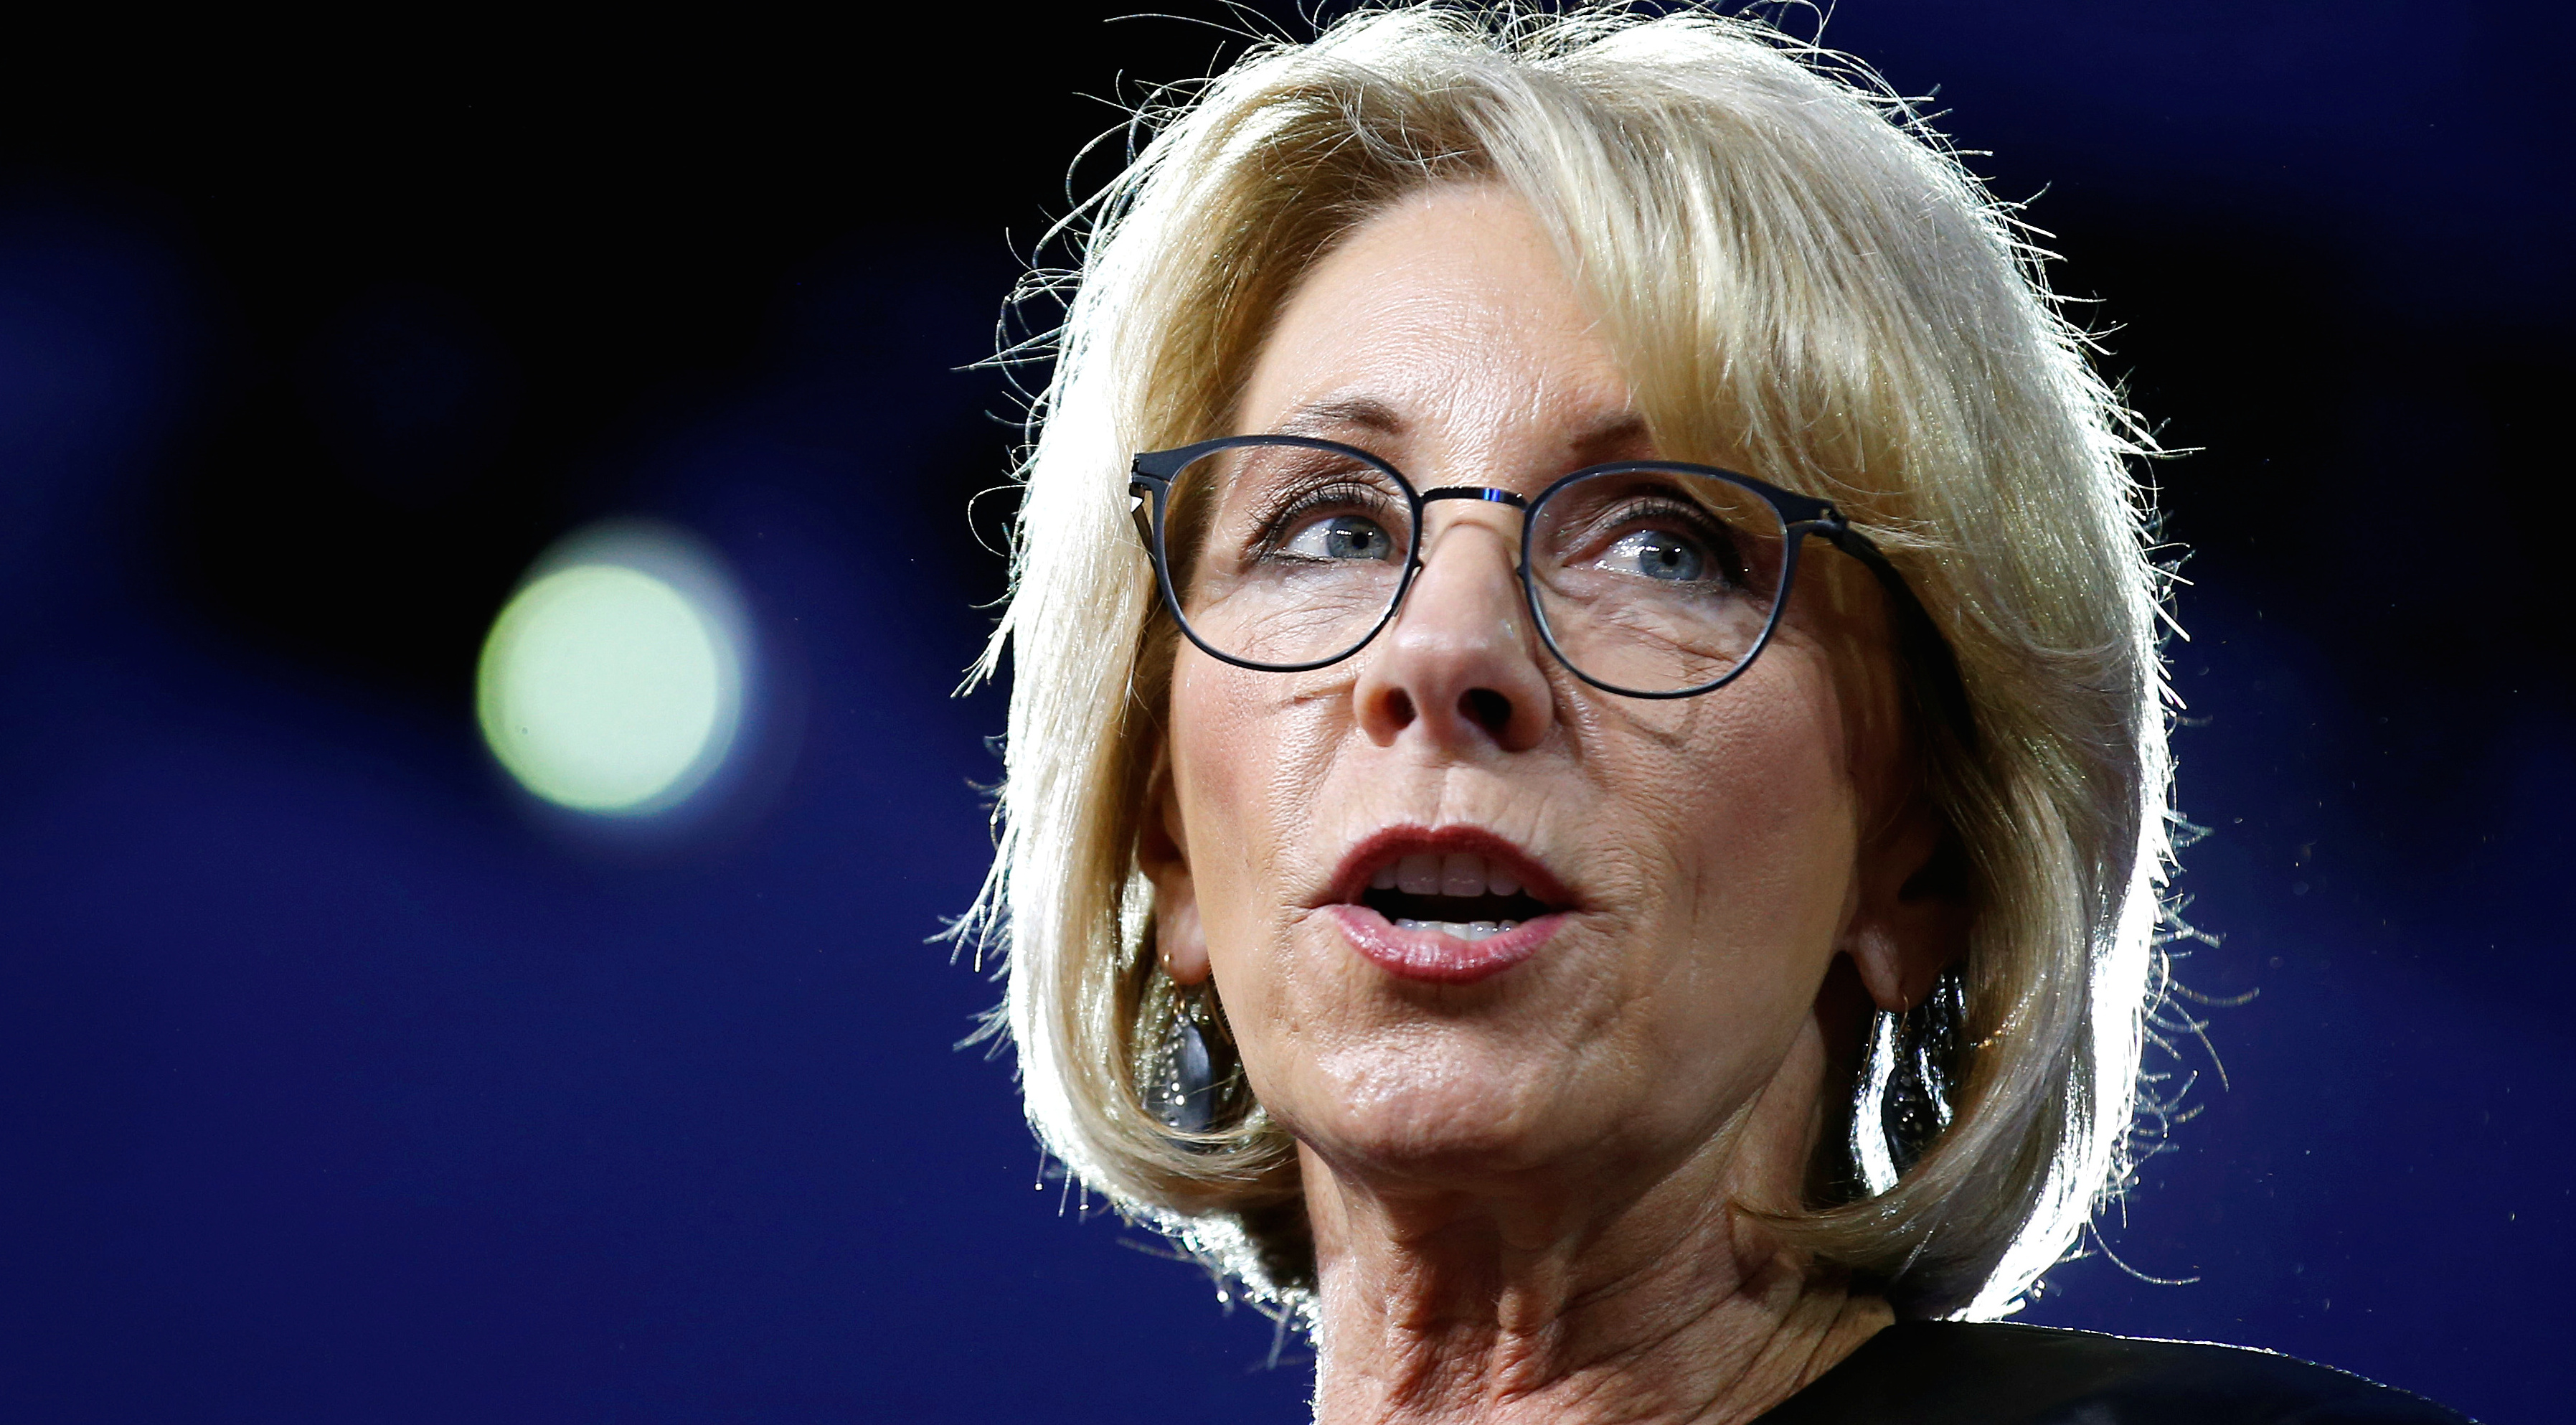 U.S. Secretary of Education Betsy DeVos speaks at the Conservative Political Action Conference (CPAC)